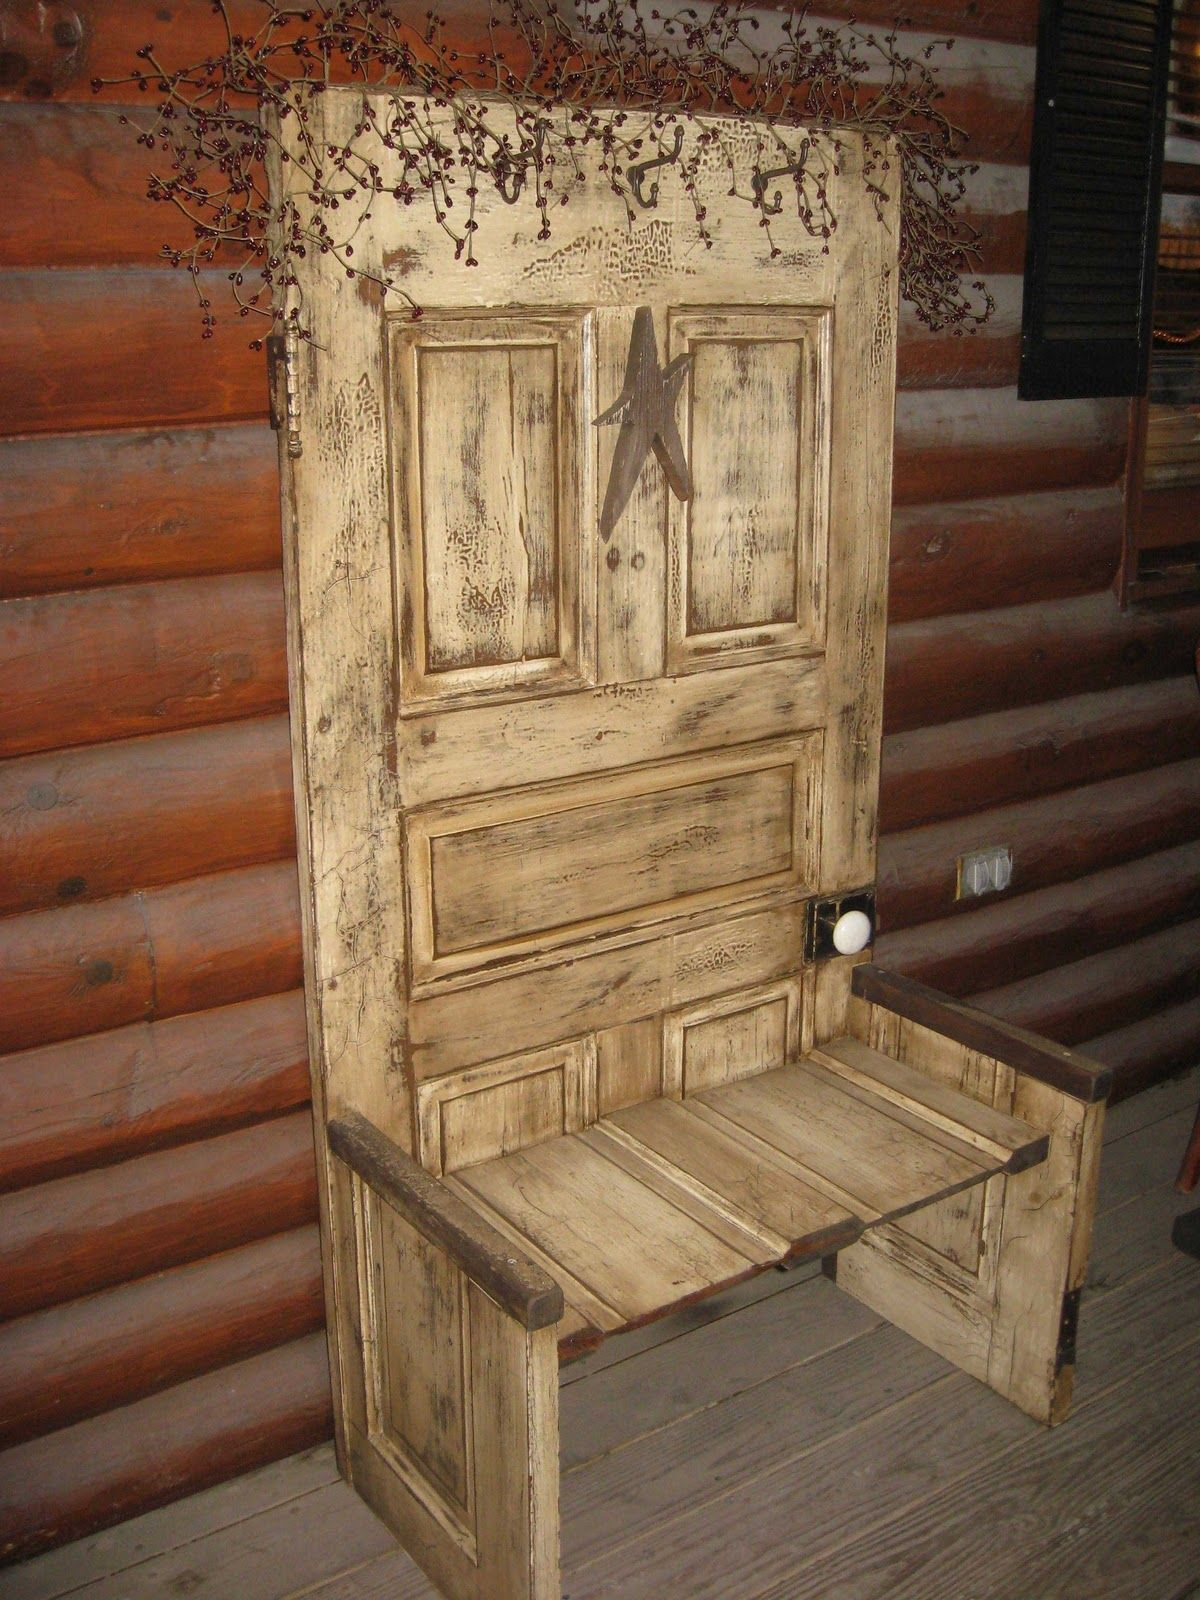 Old door crafts on pinterest old door projects door knobs crafts and cabinet door crafts Old wooden furniture